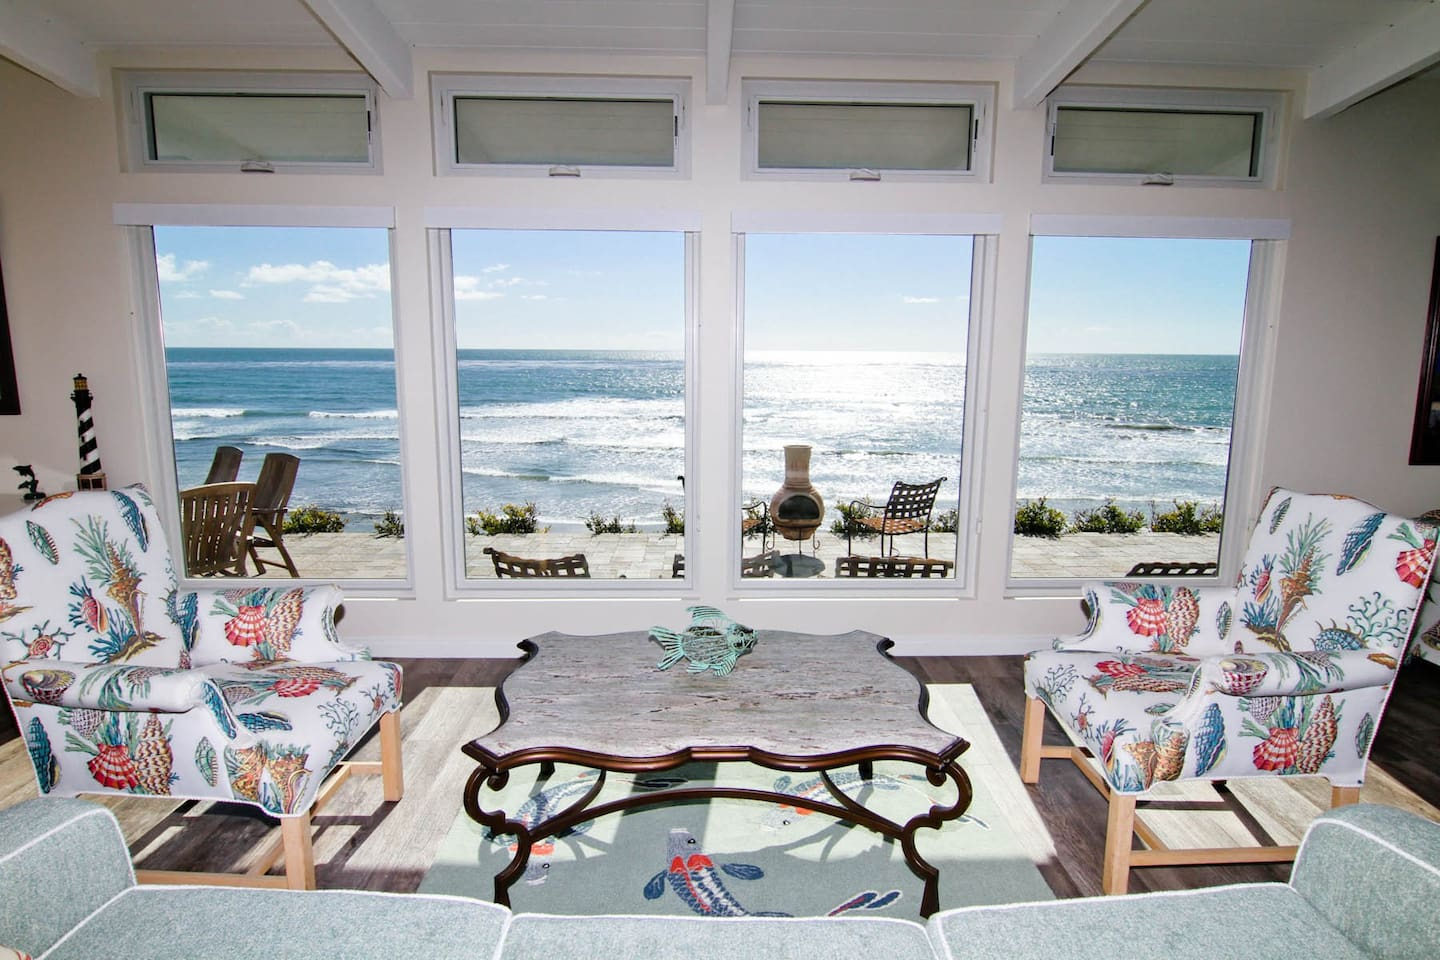 Large Windows Widen the View to the Vast Ocean